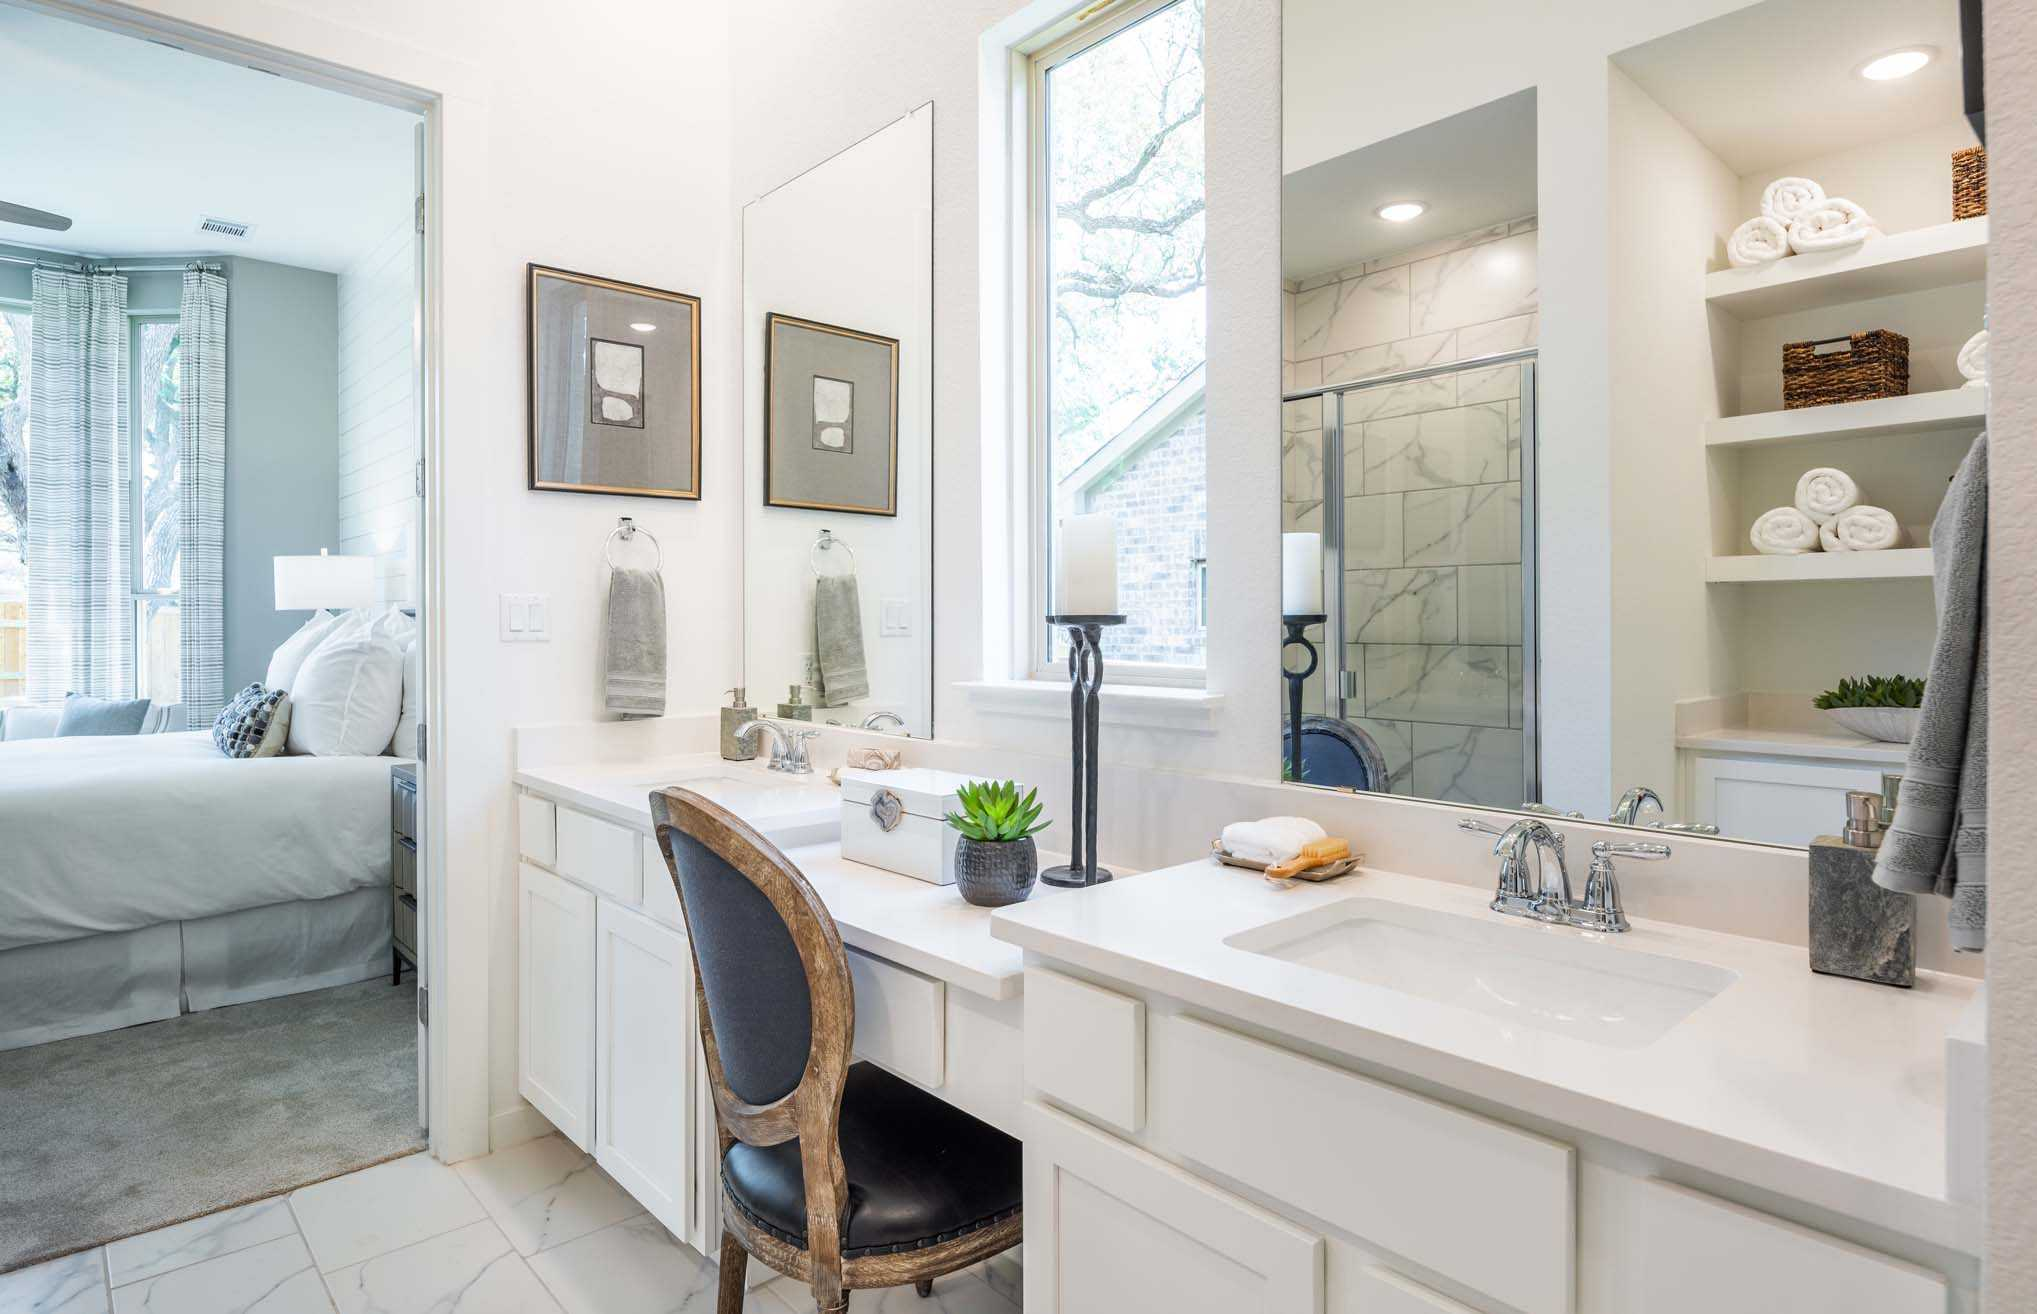 Bathroom featured in the Plan Denton By Highland Homes in San Antonio, TX